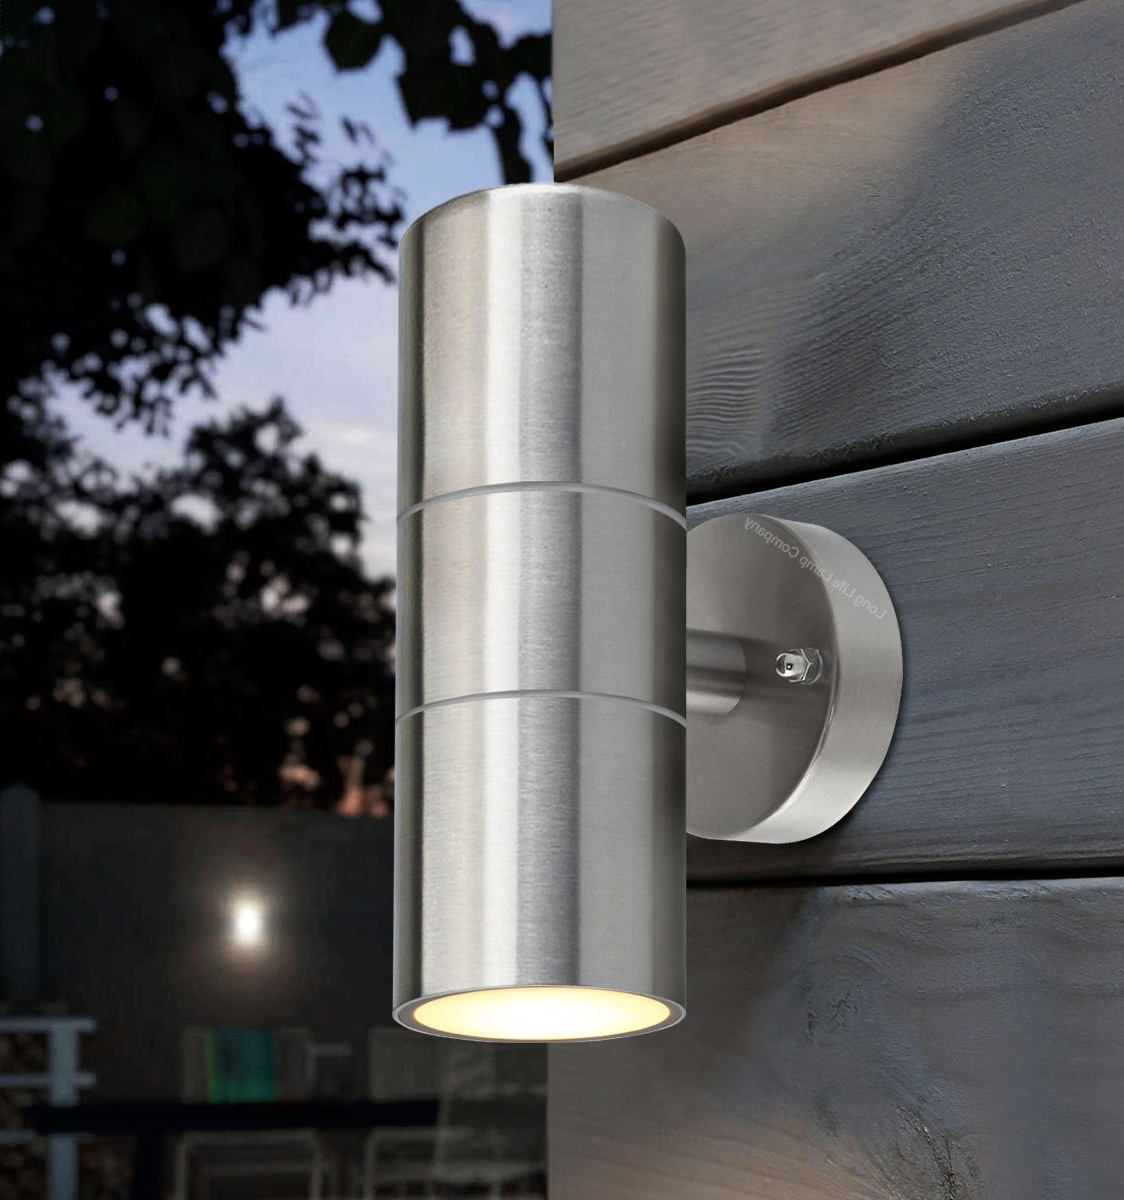 Most Recent Stainless Steel Up Down Wall Light Gu10 Ip65 Double Outdoor Wall In Northern Ireland Outdoor Wall Lights (View 16 of 20)